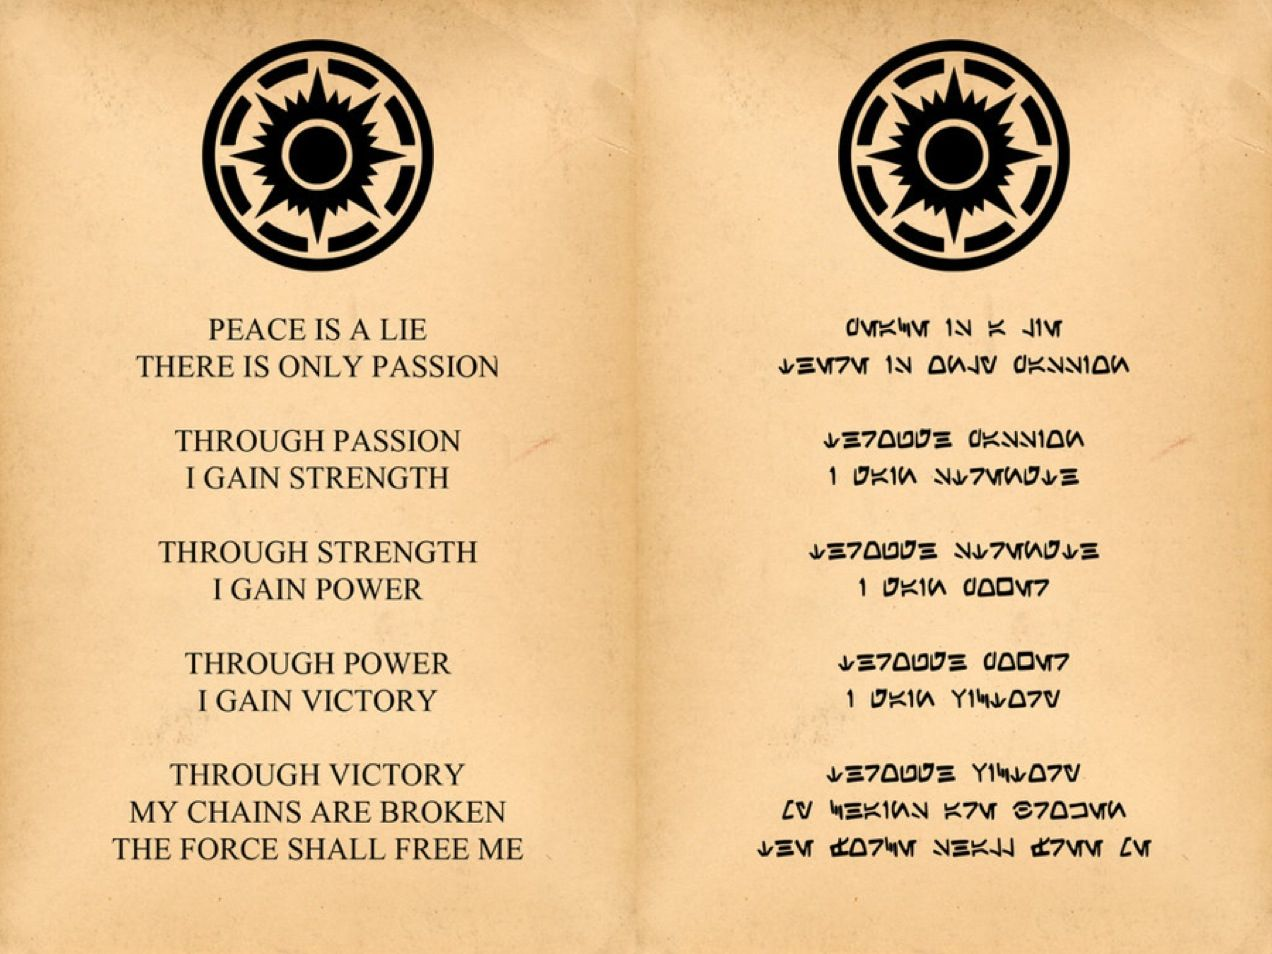 Sith Code In English And In The Aurebesh Alphabet